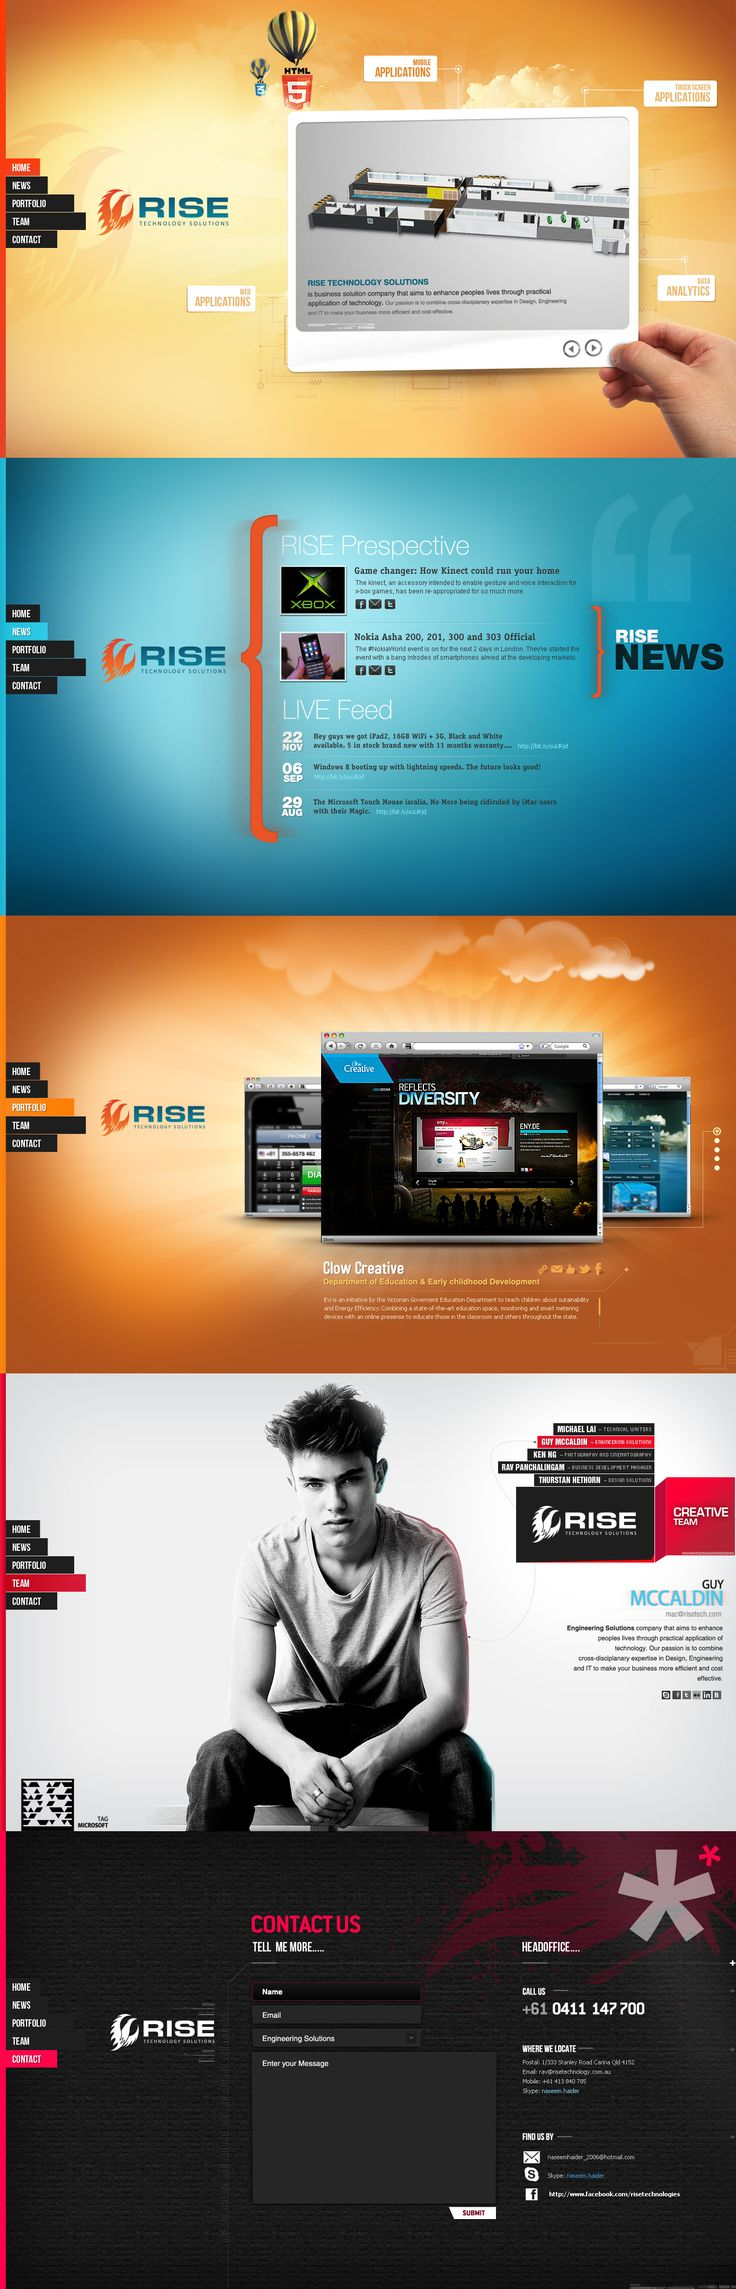 Rise Technologies Html 5 - some great ideas!